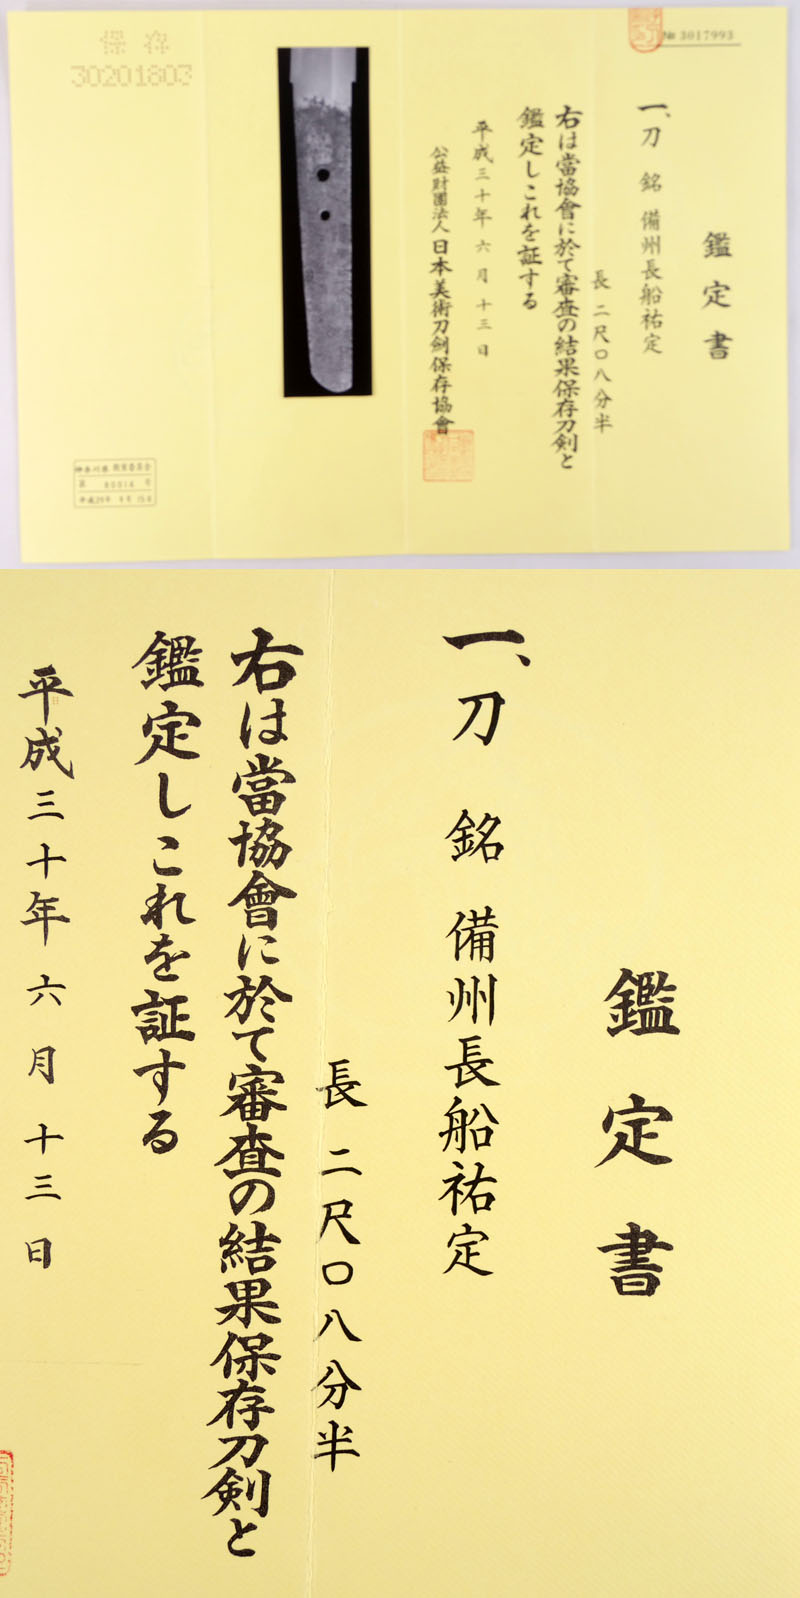 備州長船祐定 Picture of Certificate